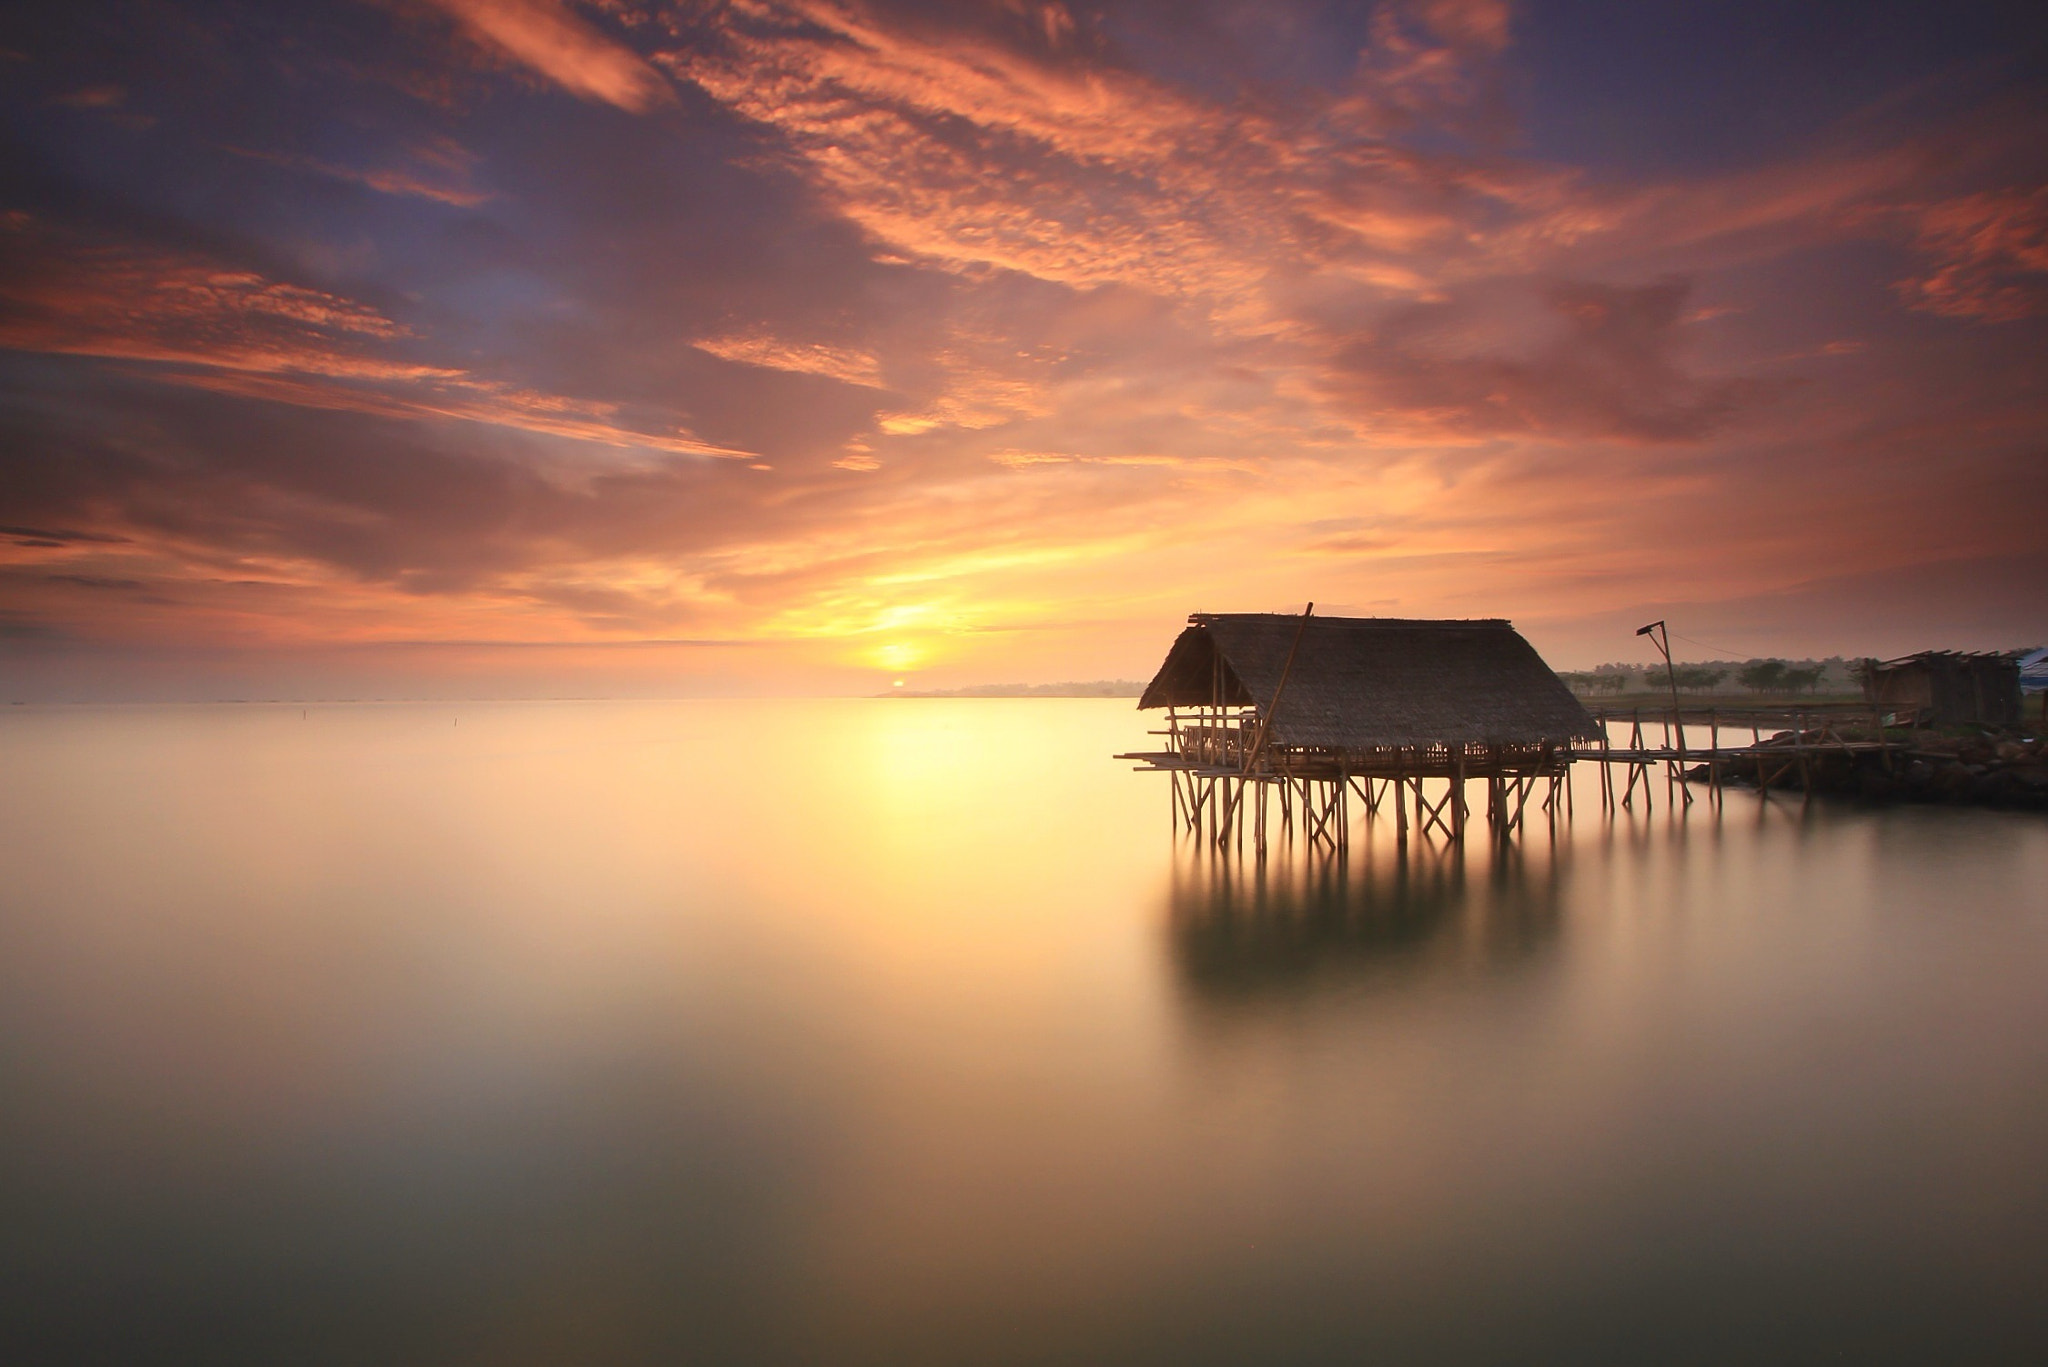 Photograph Start to rise by Rizki Noer on 500px